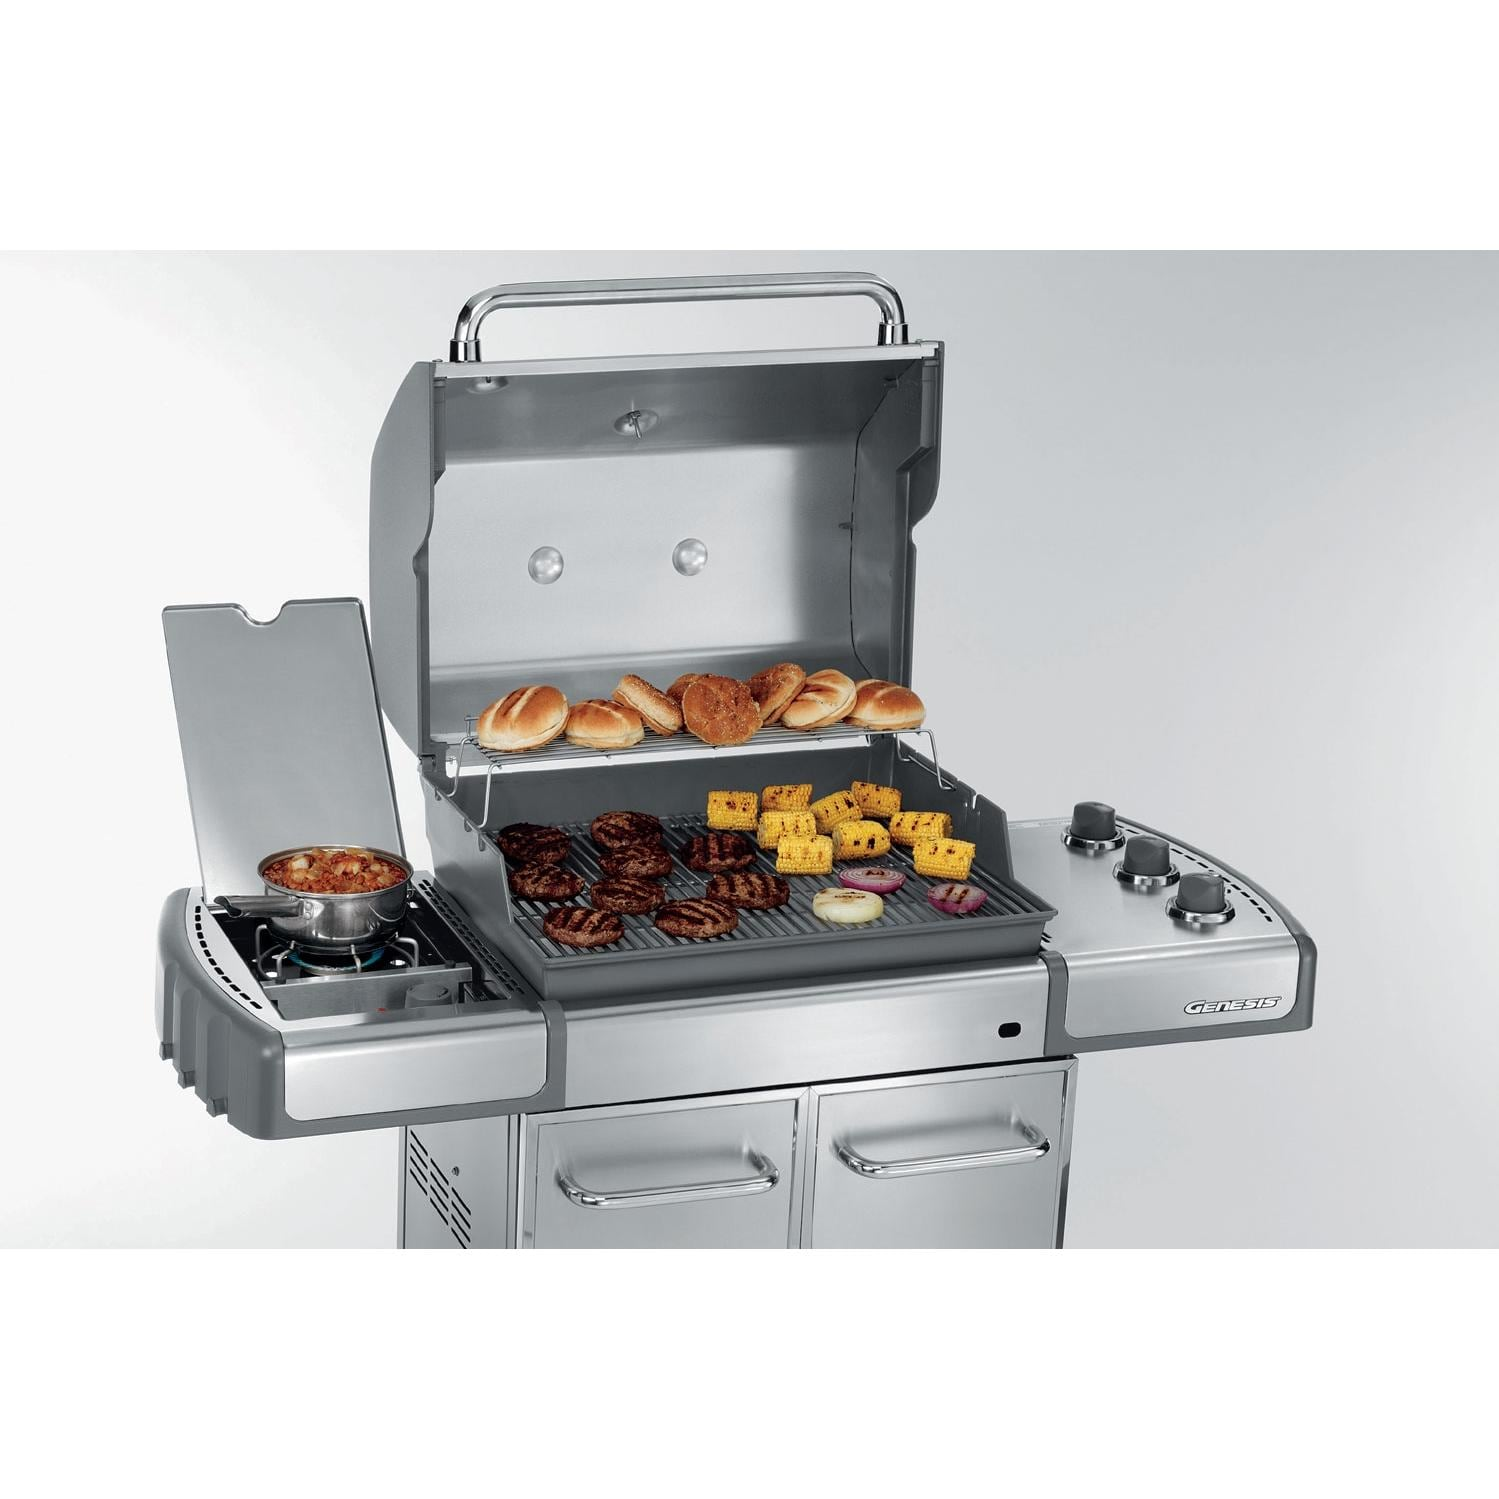 weber genesis grill s 320 weber gas grills weber grills. Black Bedroom Furniture Sets. Home Design Ideas